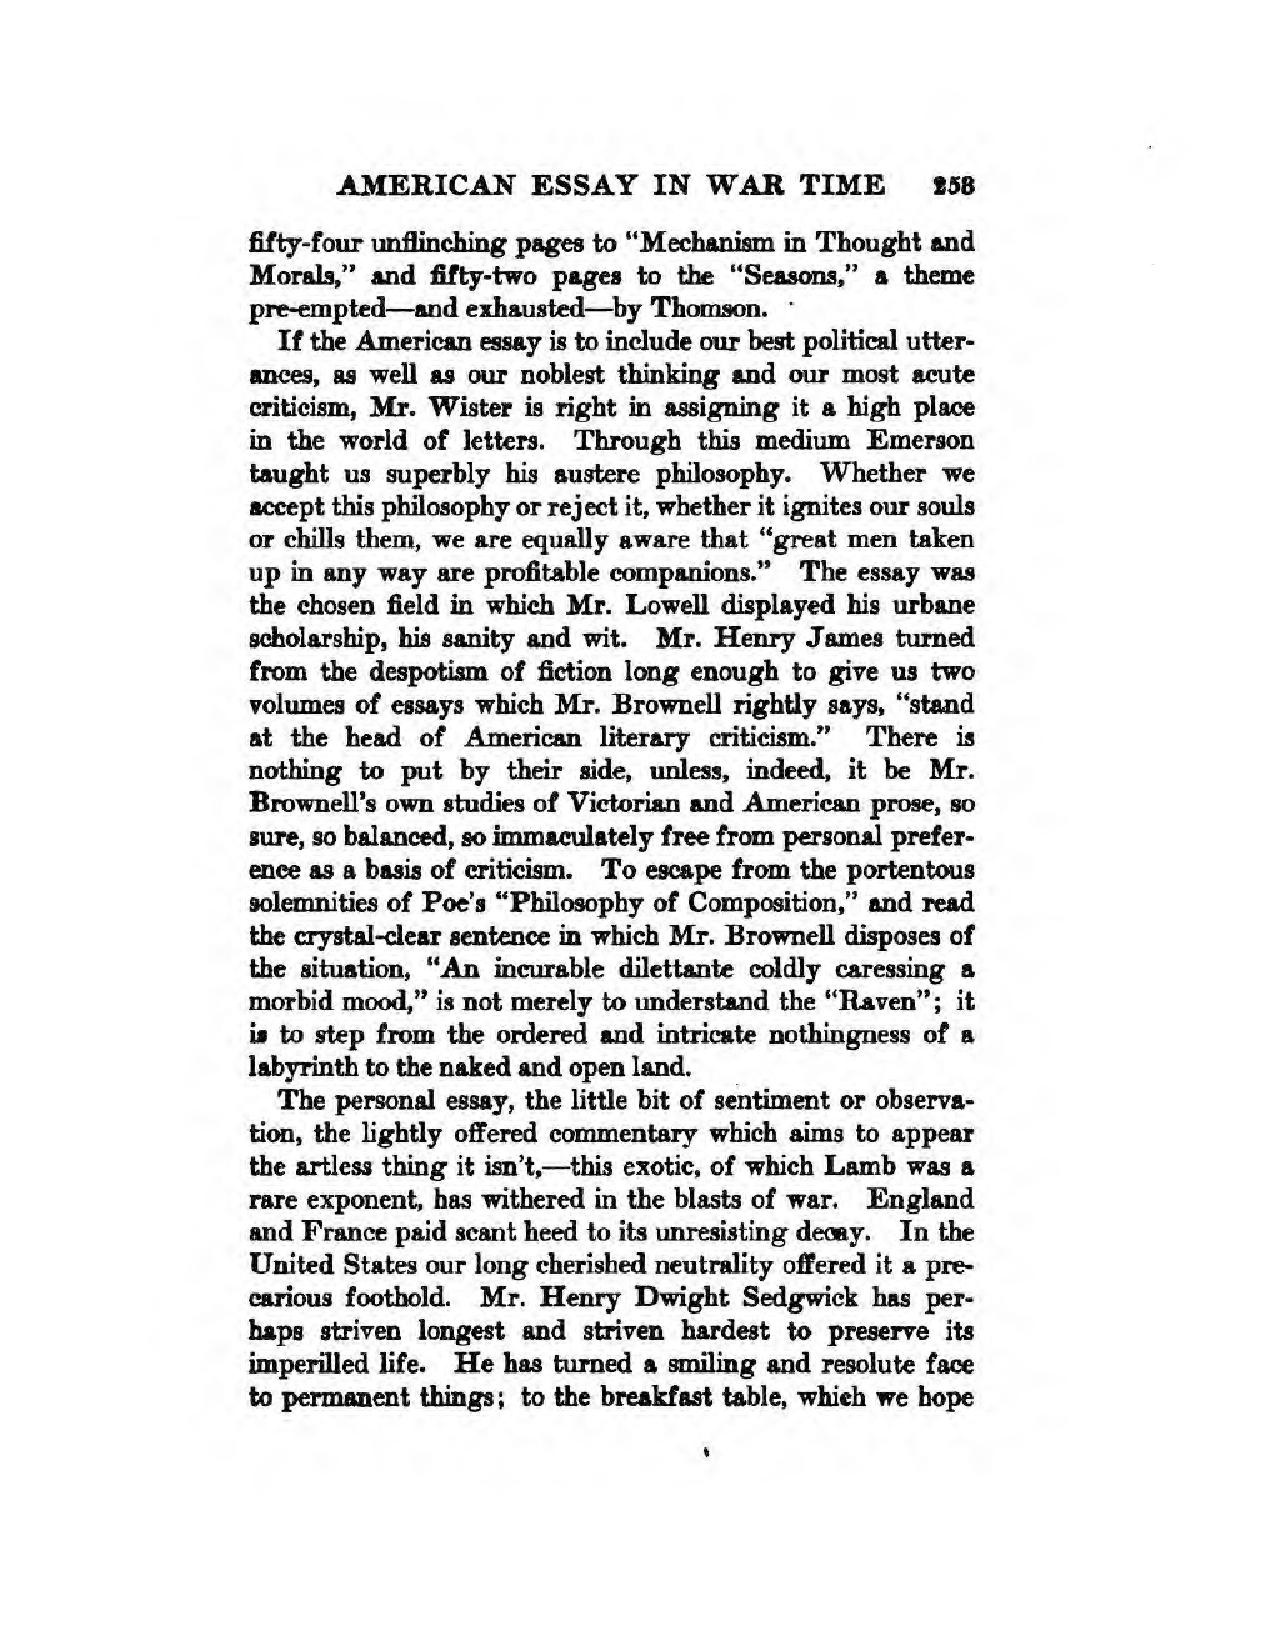 022 American Essay Example Page5 1275px The In War Time2c Agnes Repplier2c 1918 Striking Format Literature Topics Identity Titles Full